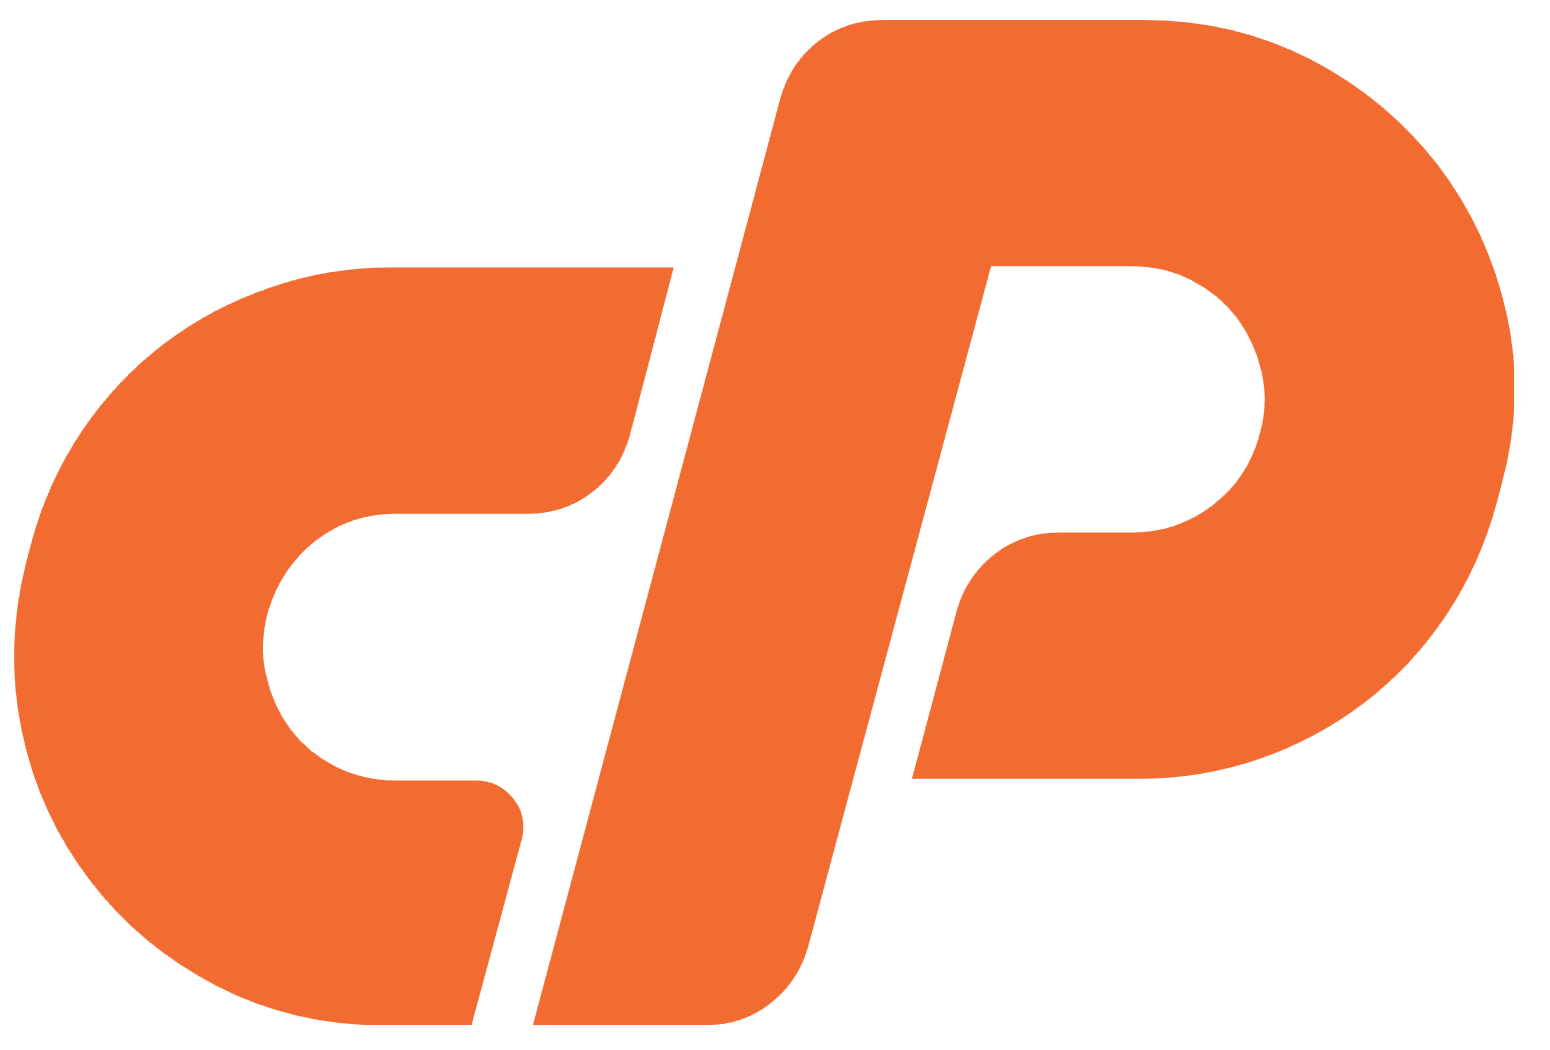 cPanel Price to Increase (Again) In 2021